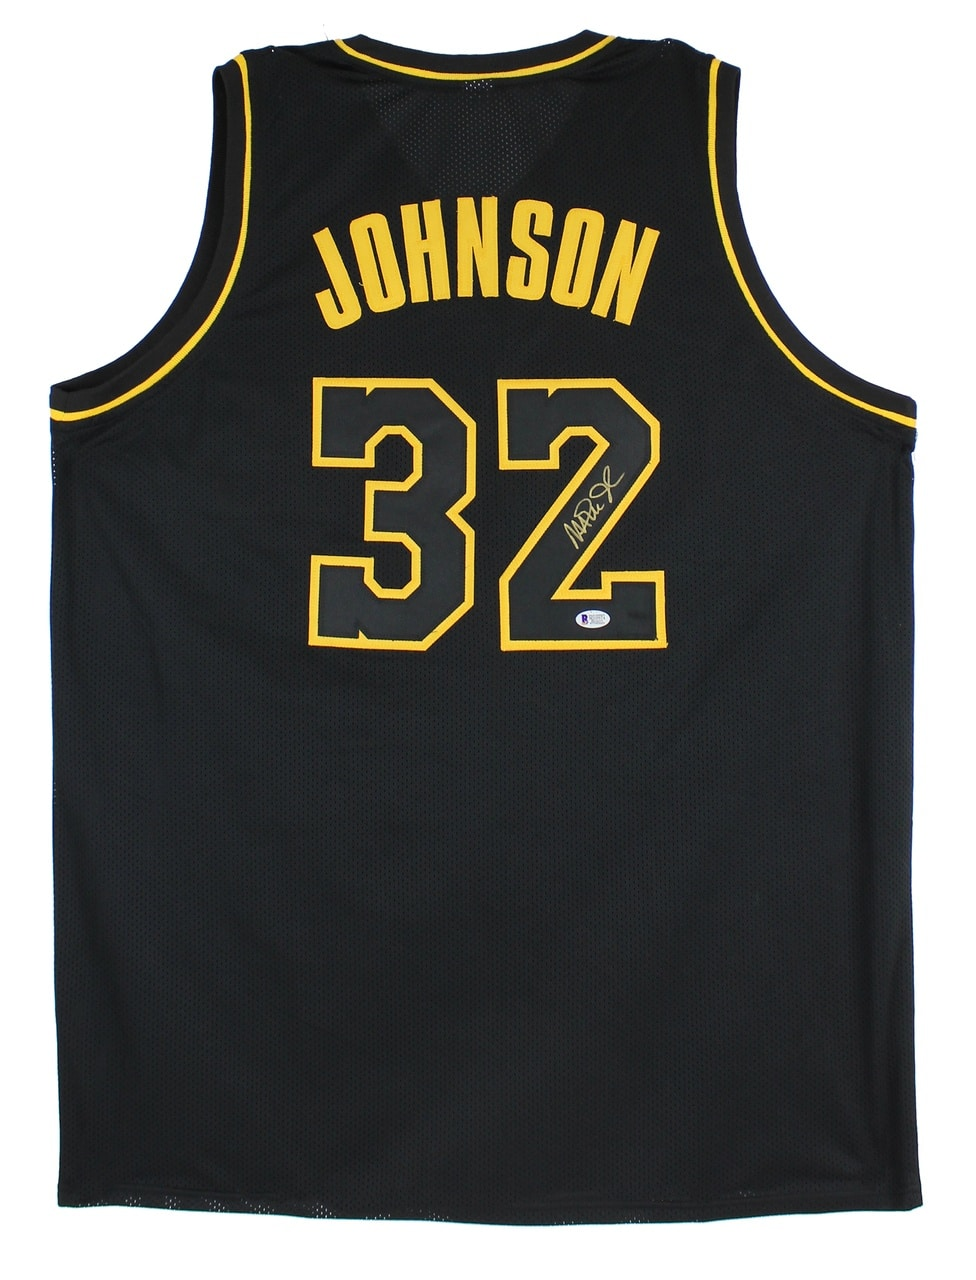 Magic Johnson Signed Black Pro Style Jersey Black Numbers Gold Trim BAS Witness